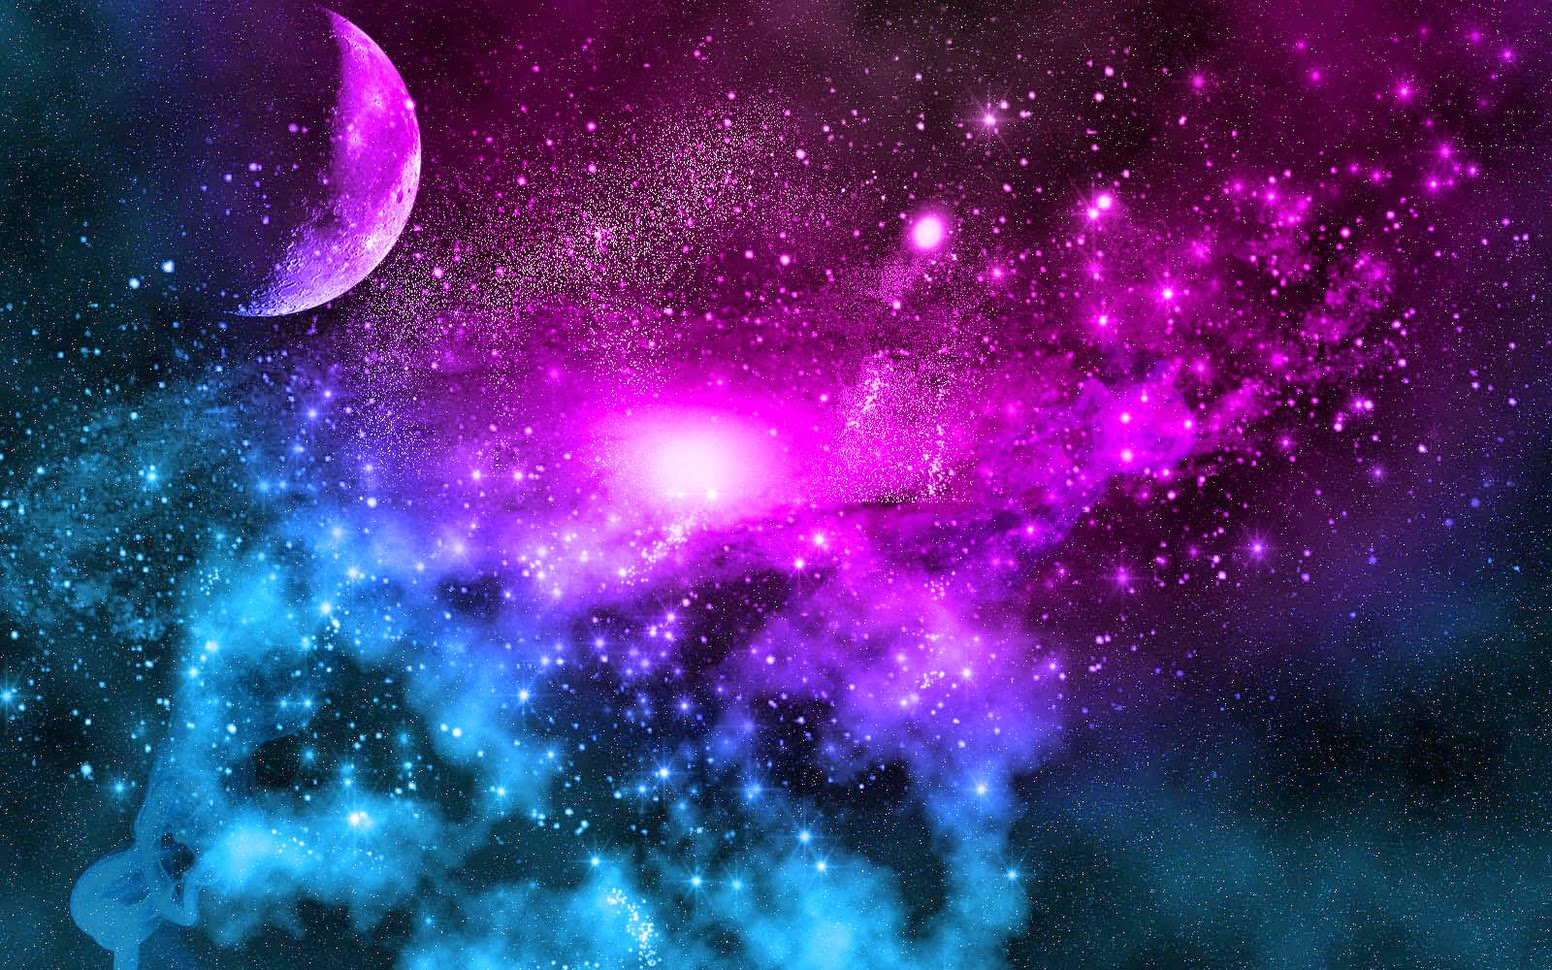 Galaxy wallpaper free download 2015 02 08 for Galaxy wallpaper for rooms